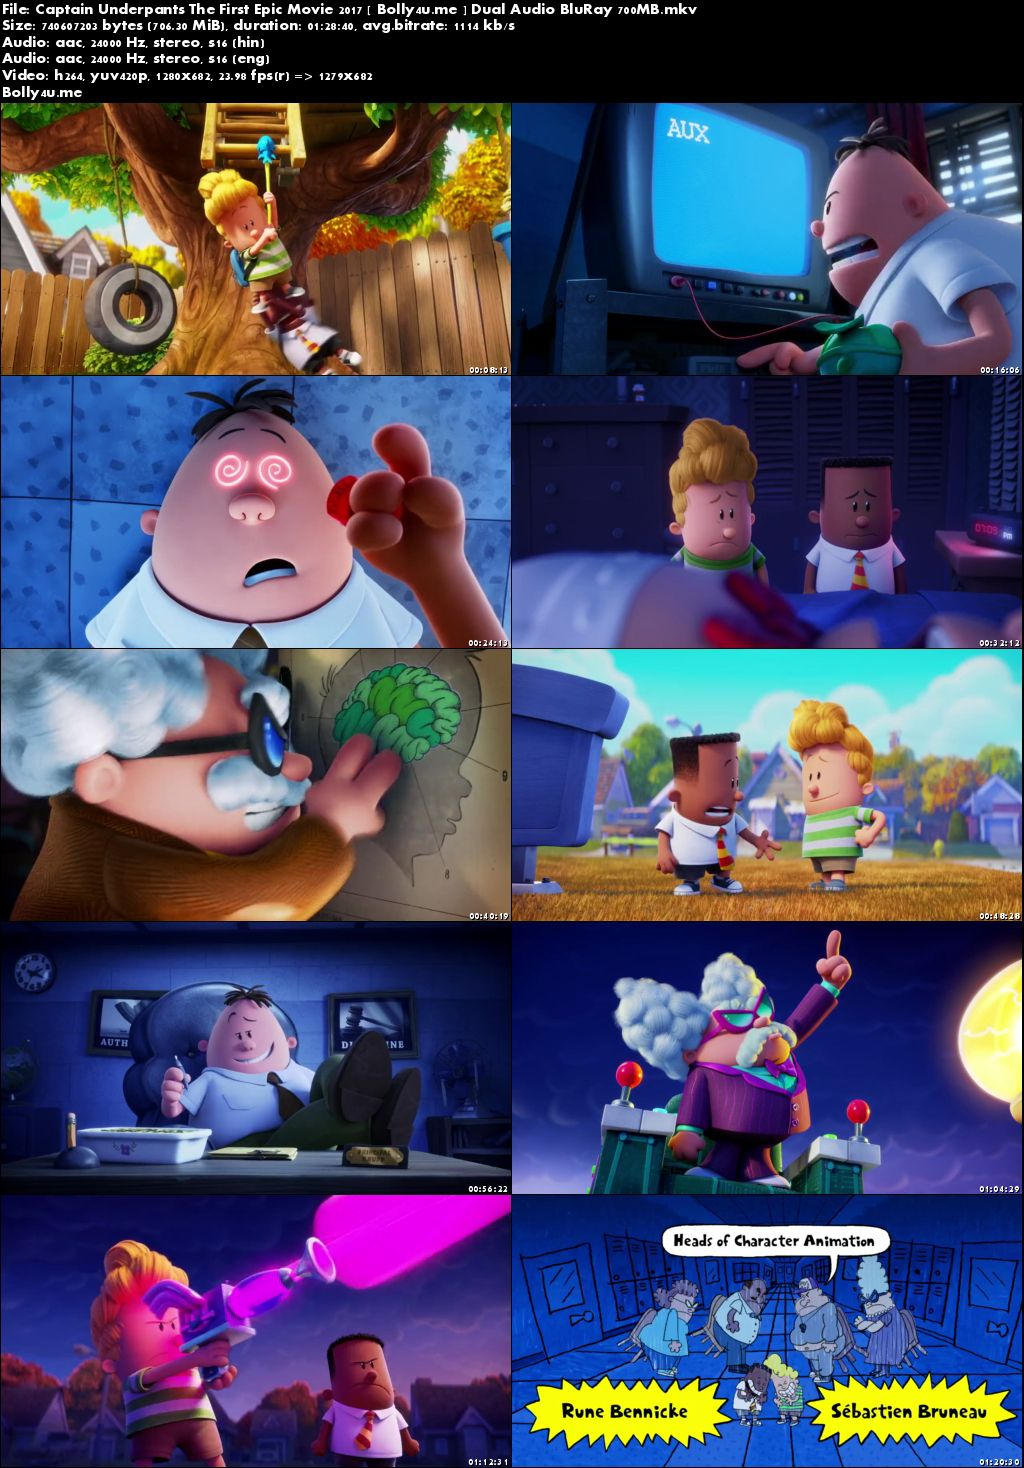 Captain Underpants The First Epic Movie 2017 BRRip 300MB Hindi Dual Audio 480p Download